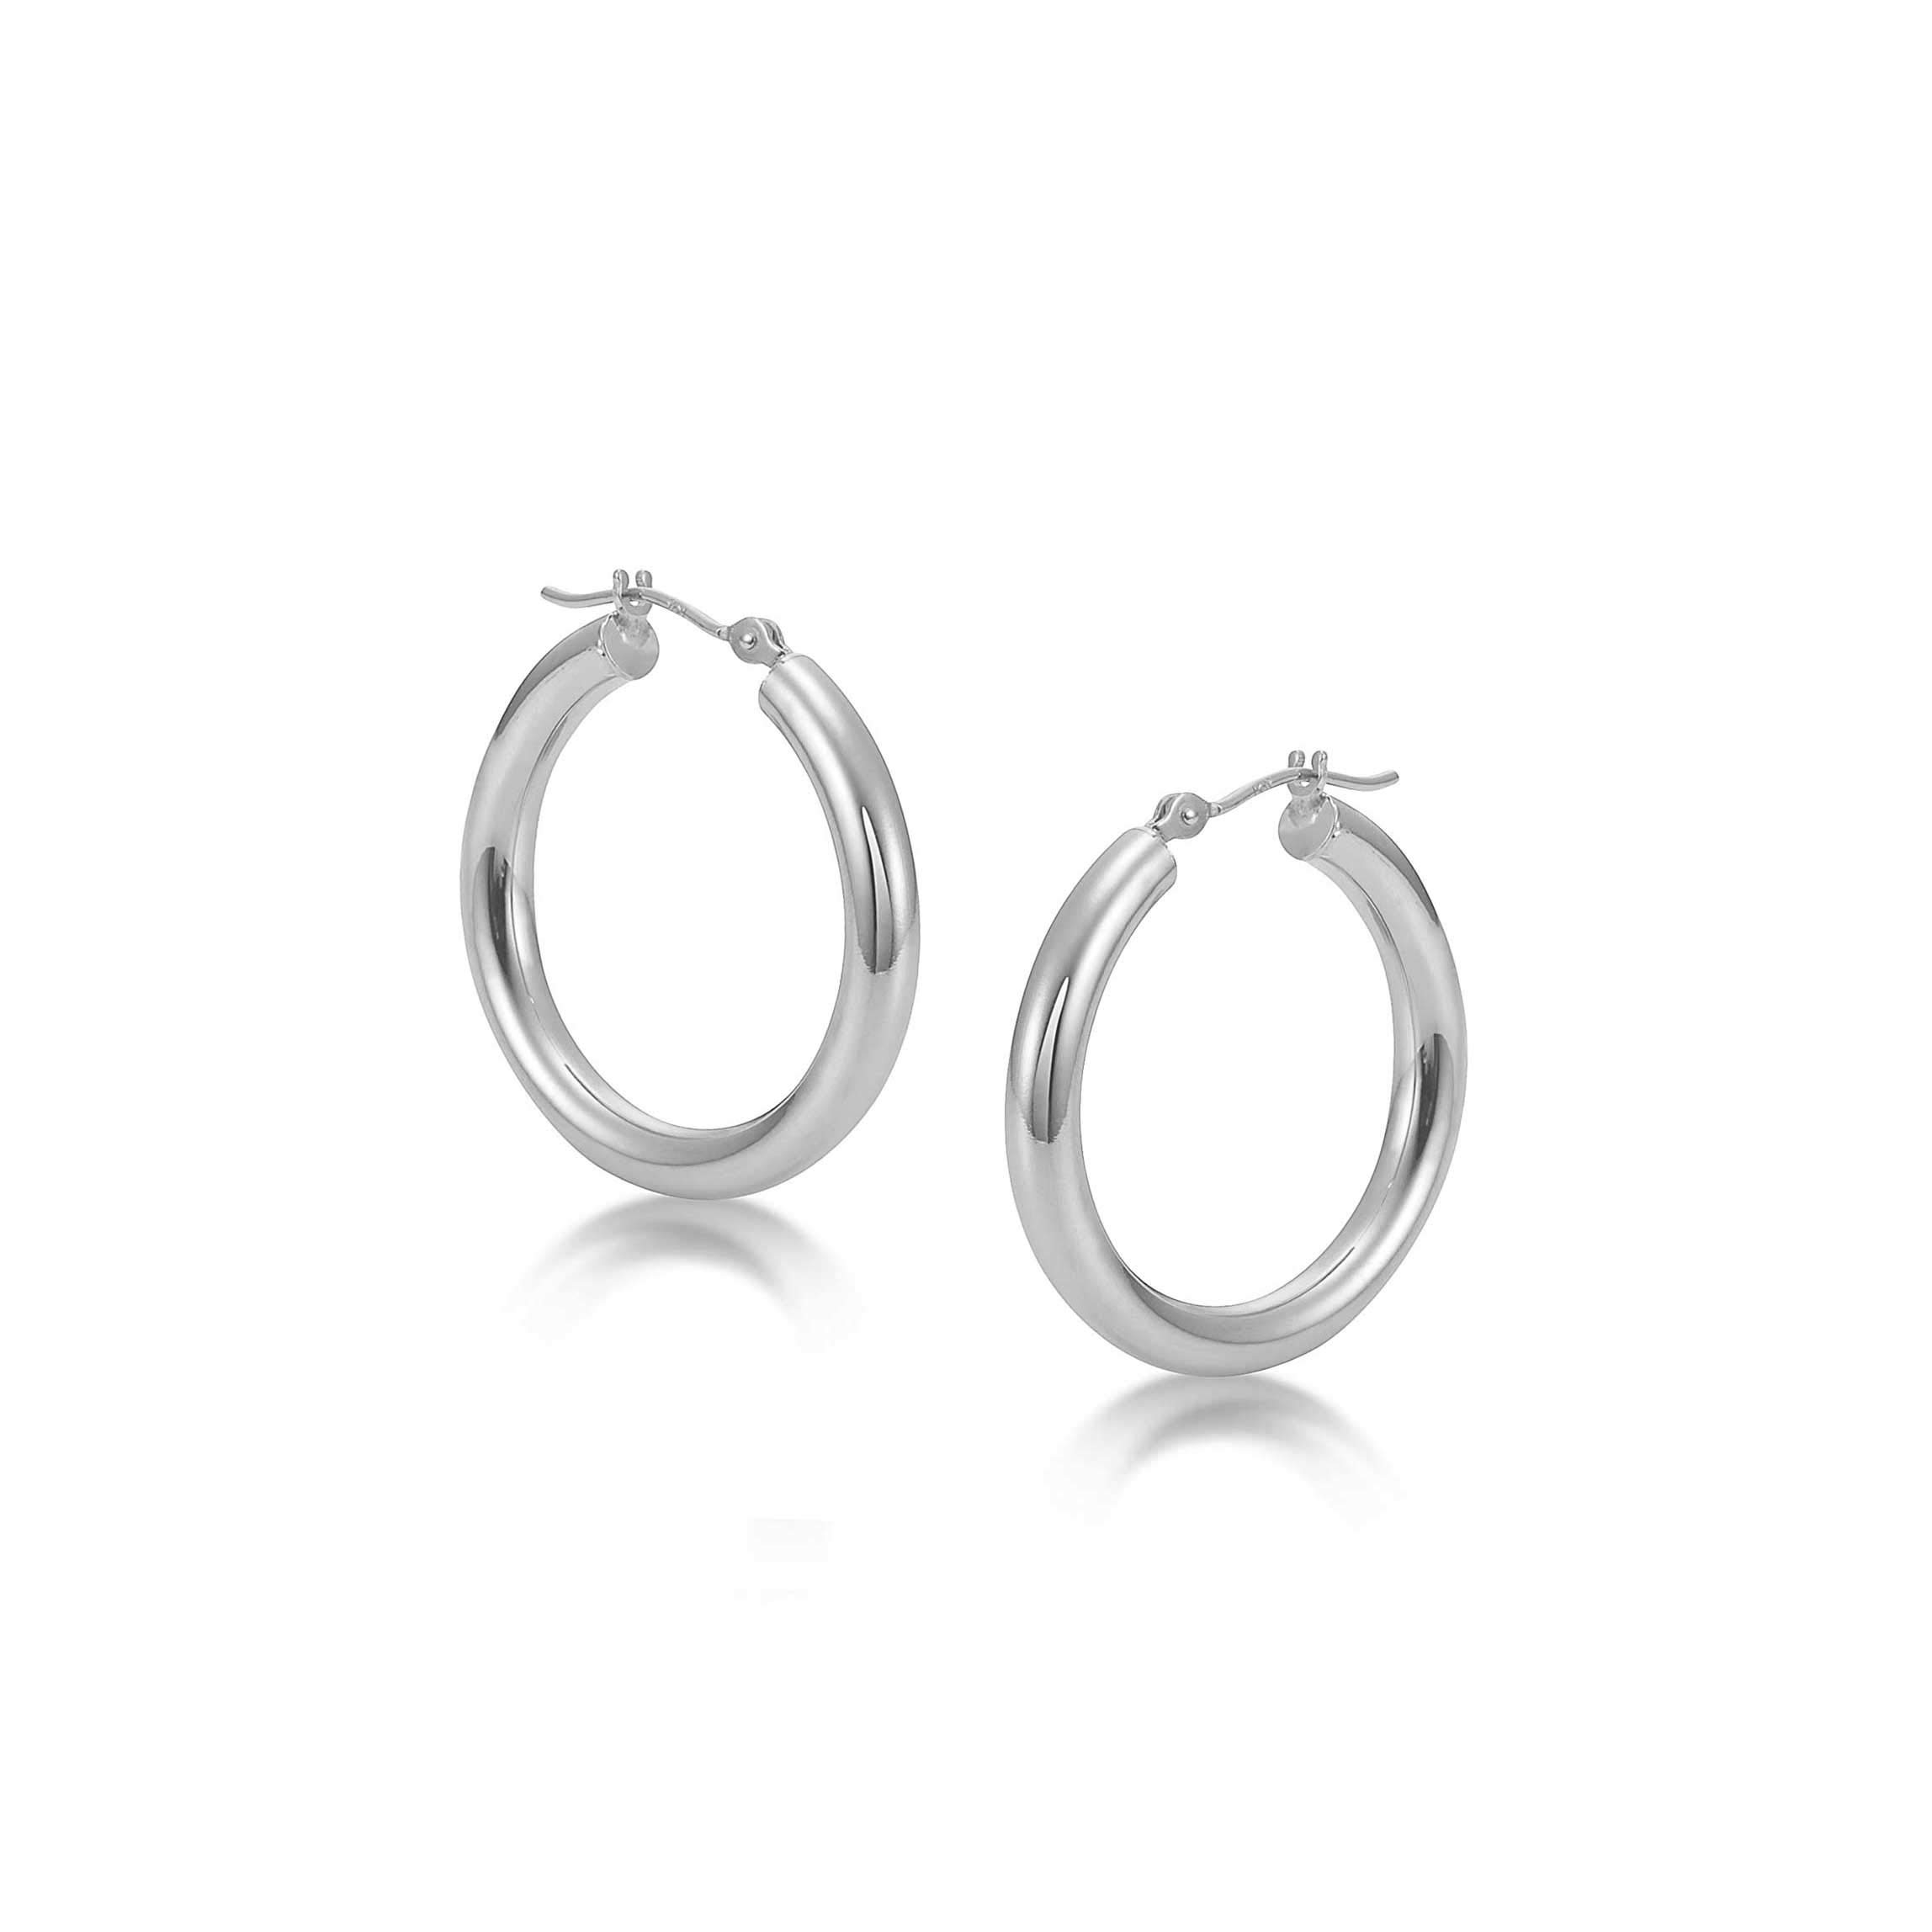 Sterling Silver Hoop Earrings - 3mm x 18mm Click-Top Tube Hoop by KEZEF Creations (Image #2)